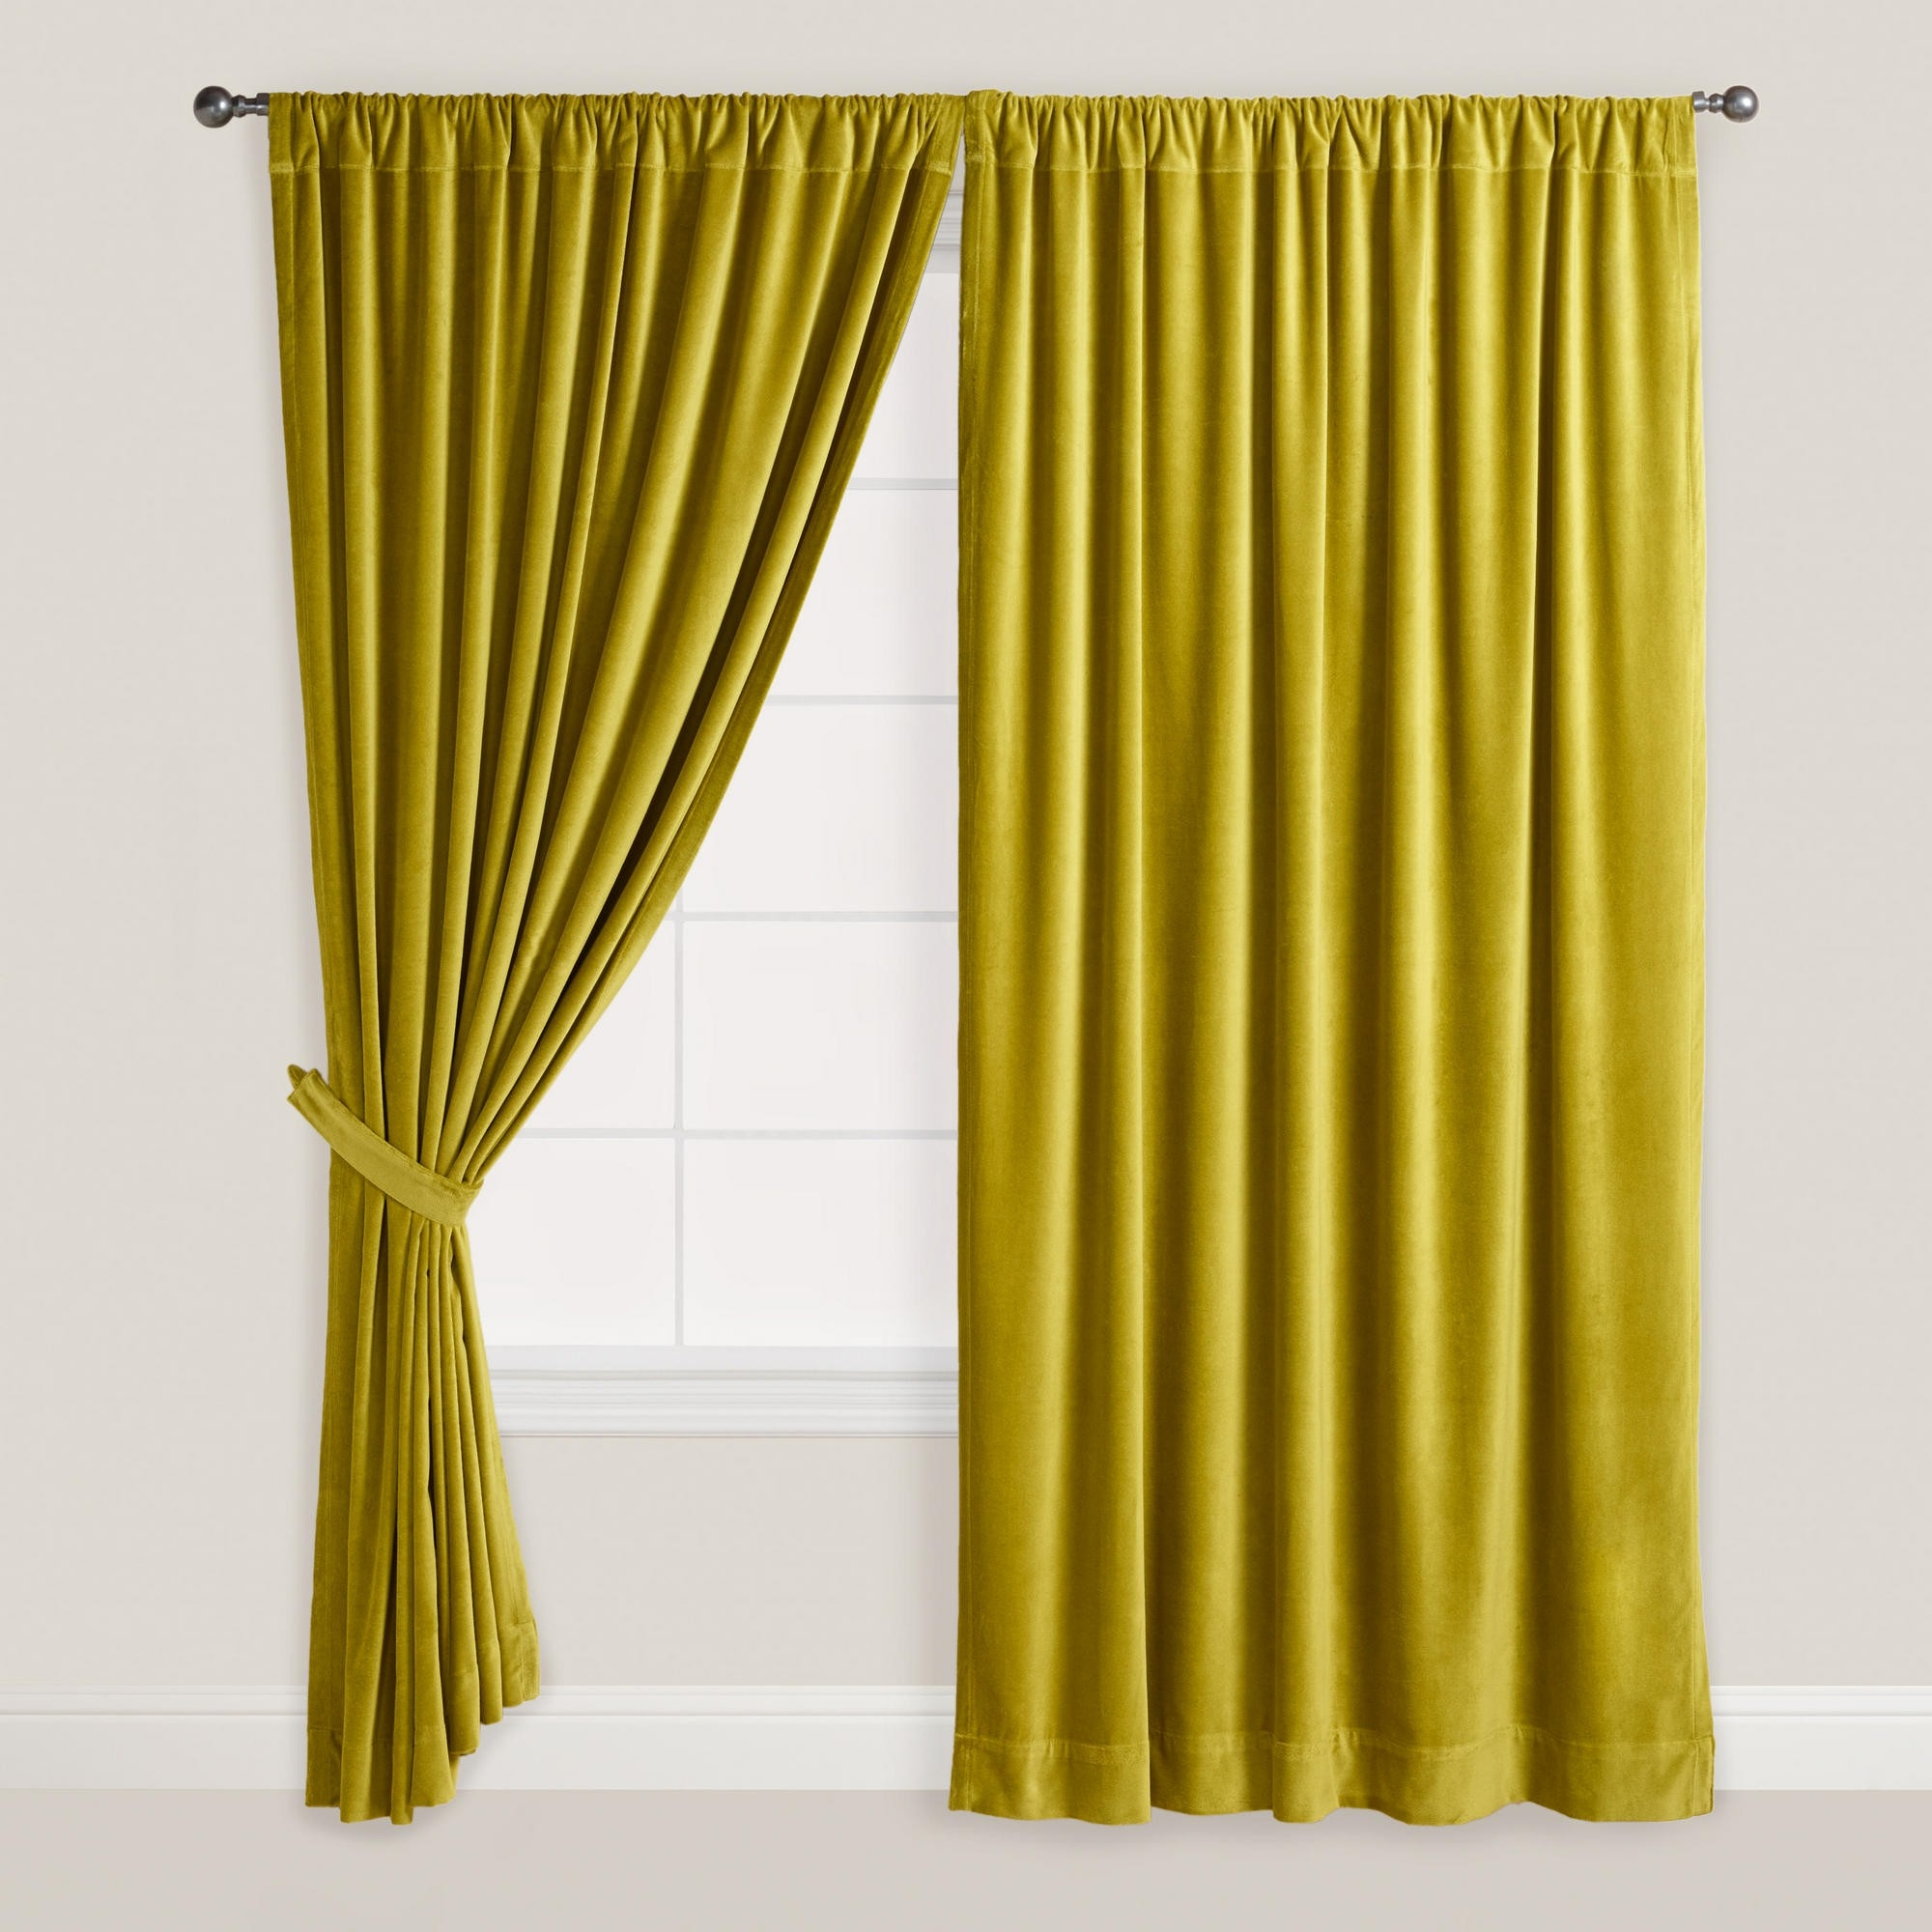 Stunning Velvet Door Curtain Ebay Door Panel Gold Velvet Curtain Inside Velvet Door Curtain (View 13 of 15)